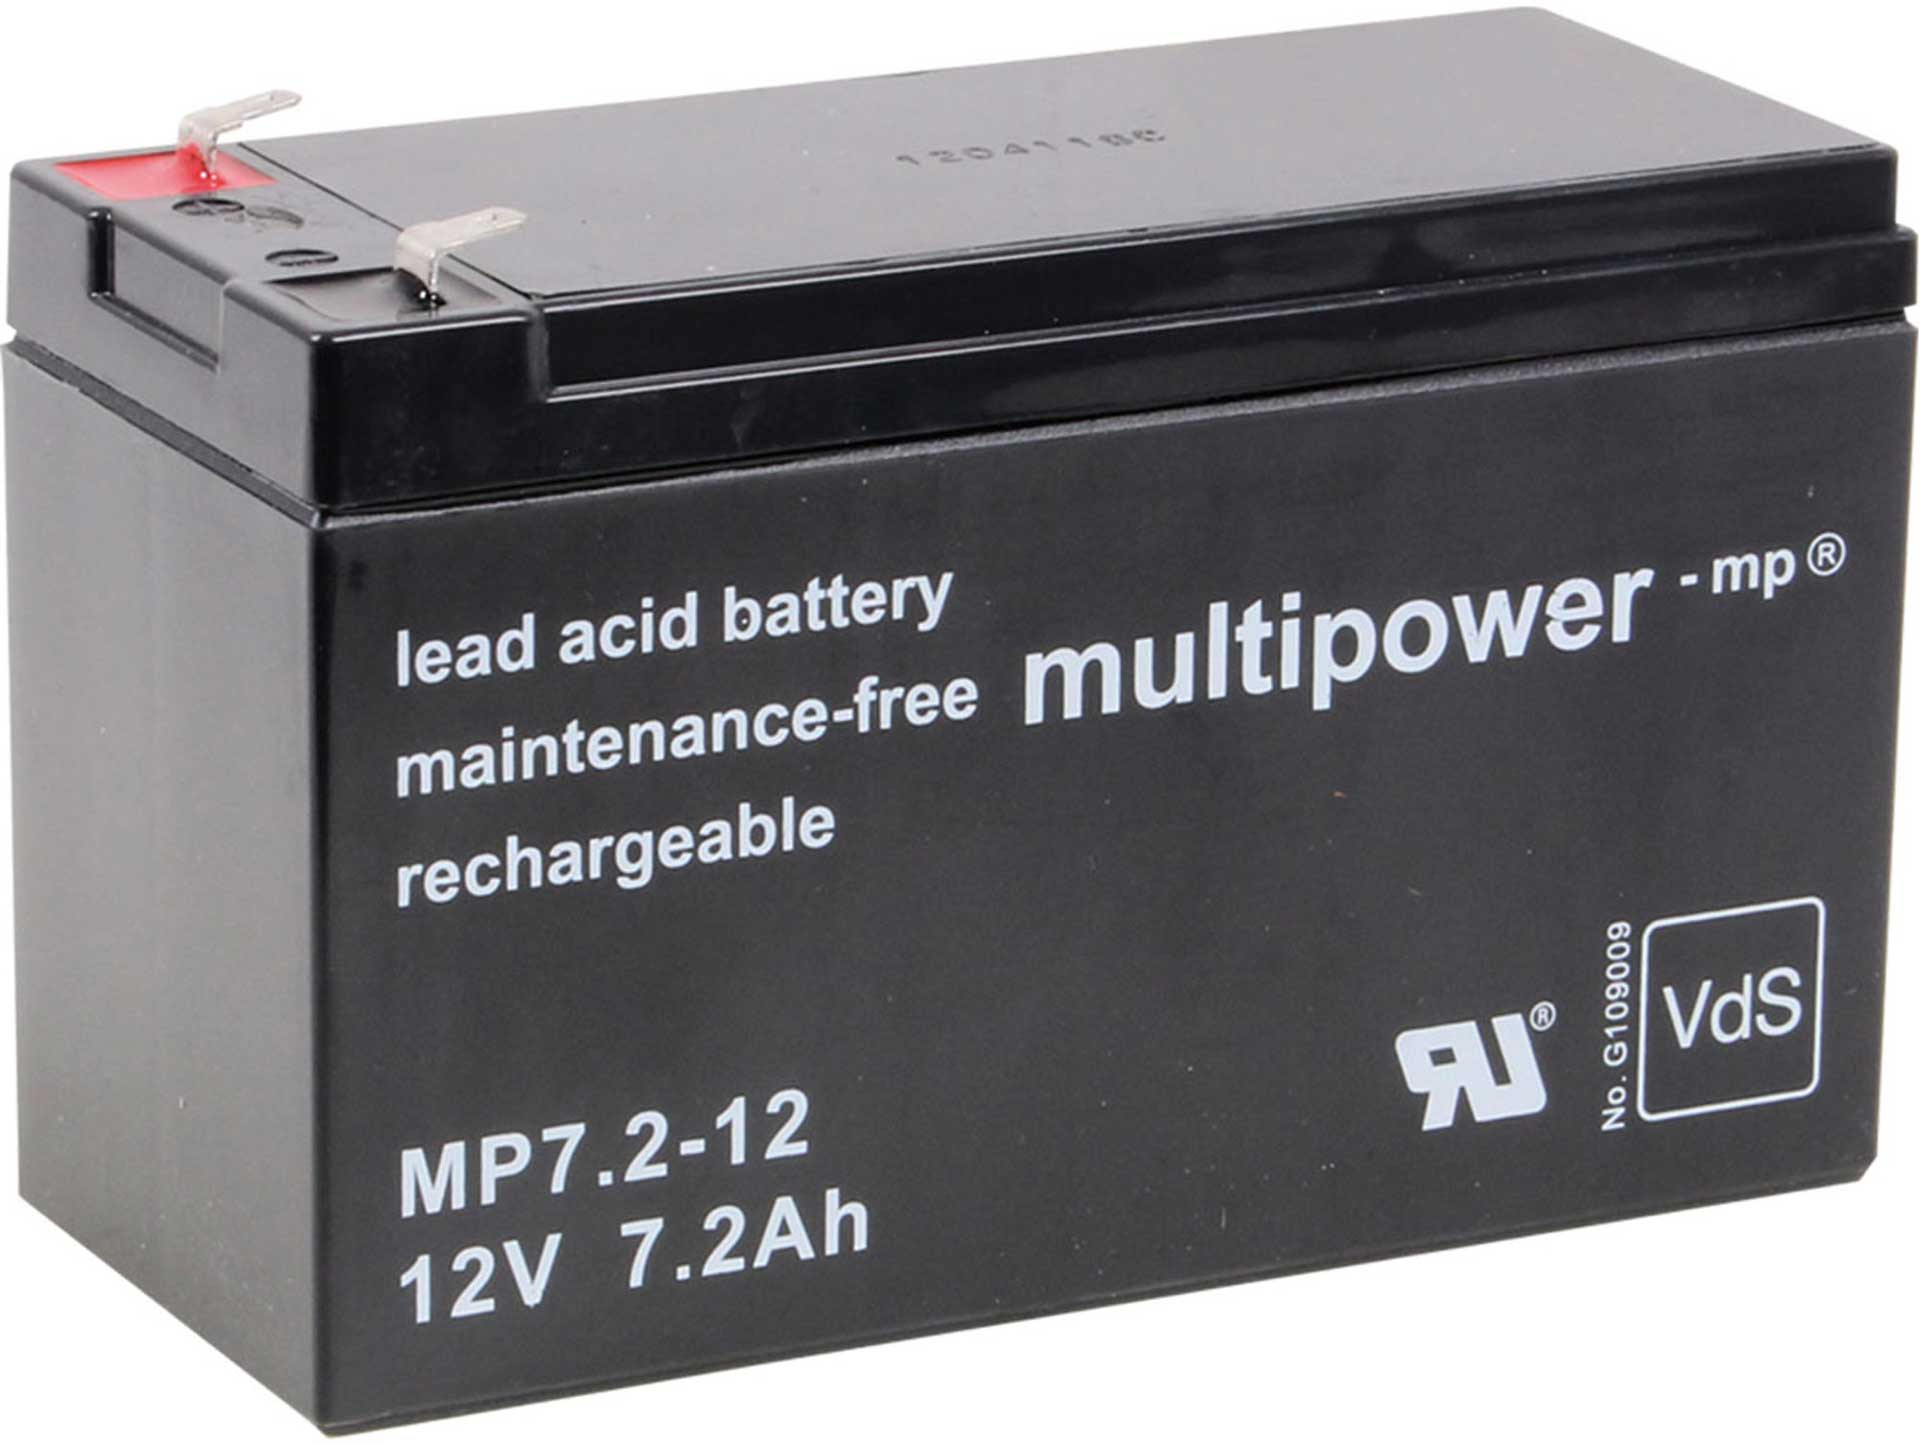 MULTIPOWER LEAD ACID BATTERY 12V/7.2AH